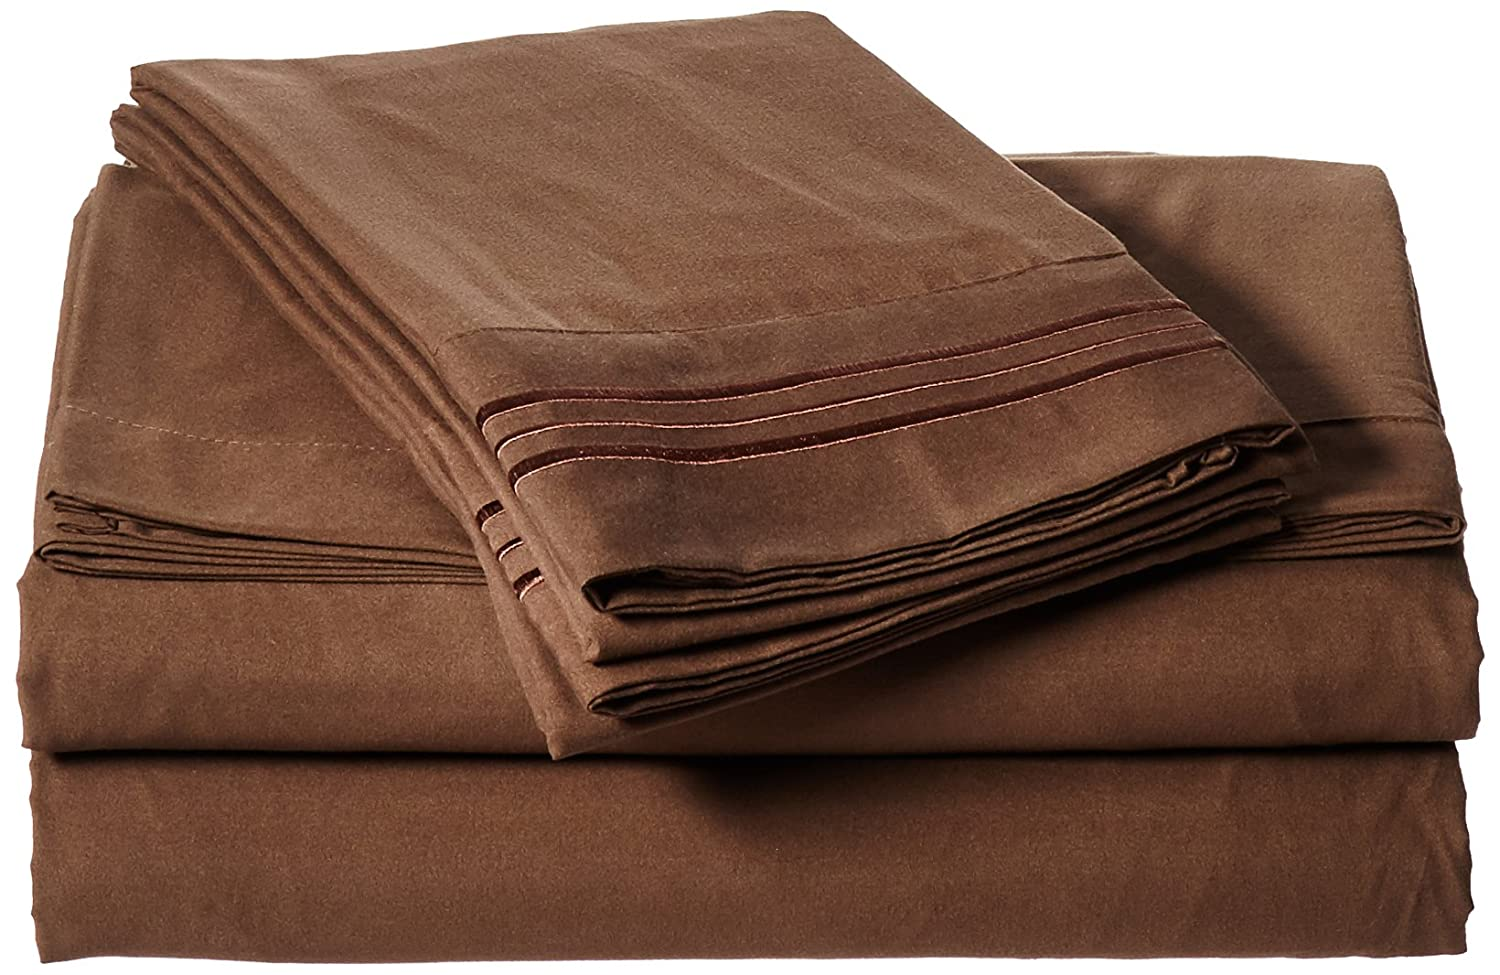 4pc Bed Sheet Set - King, Chocolate Brown